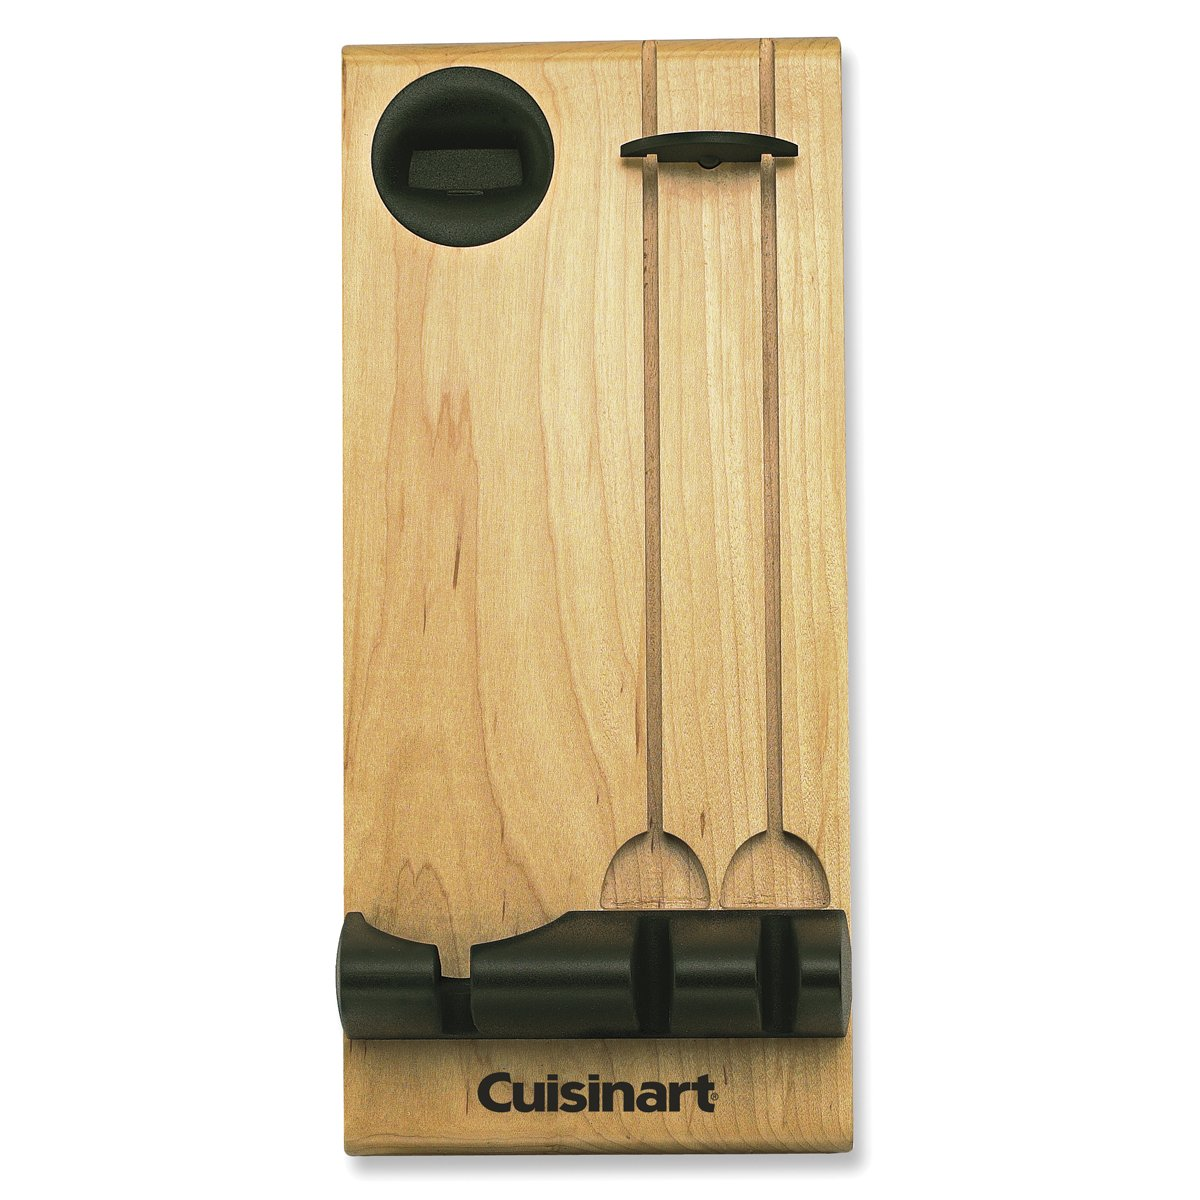 Cuisinart CEK-40 Electric Knife by Cuisinart (Image #5)